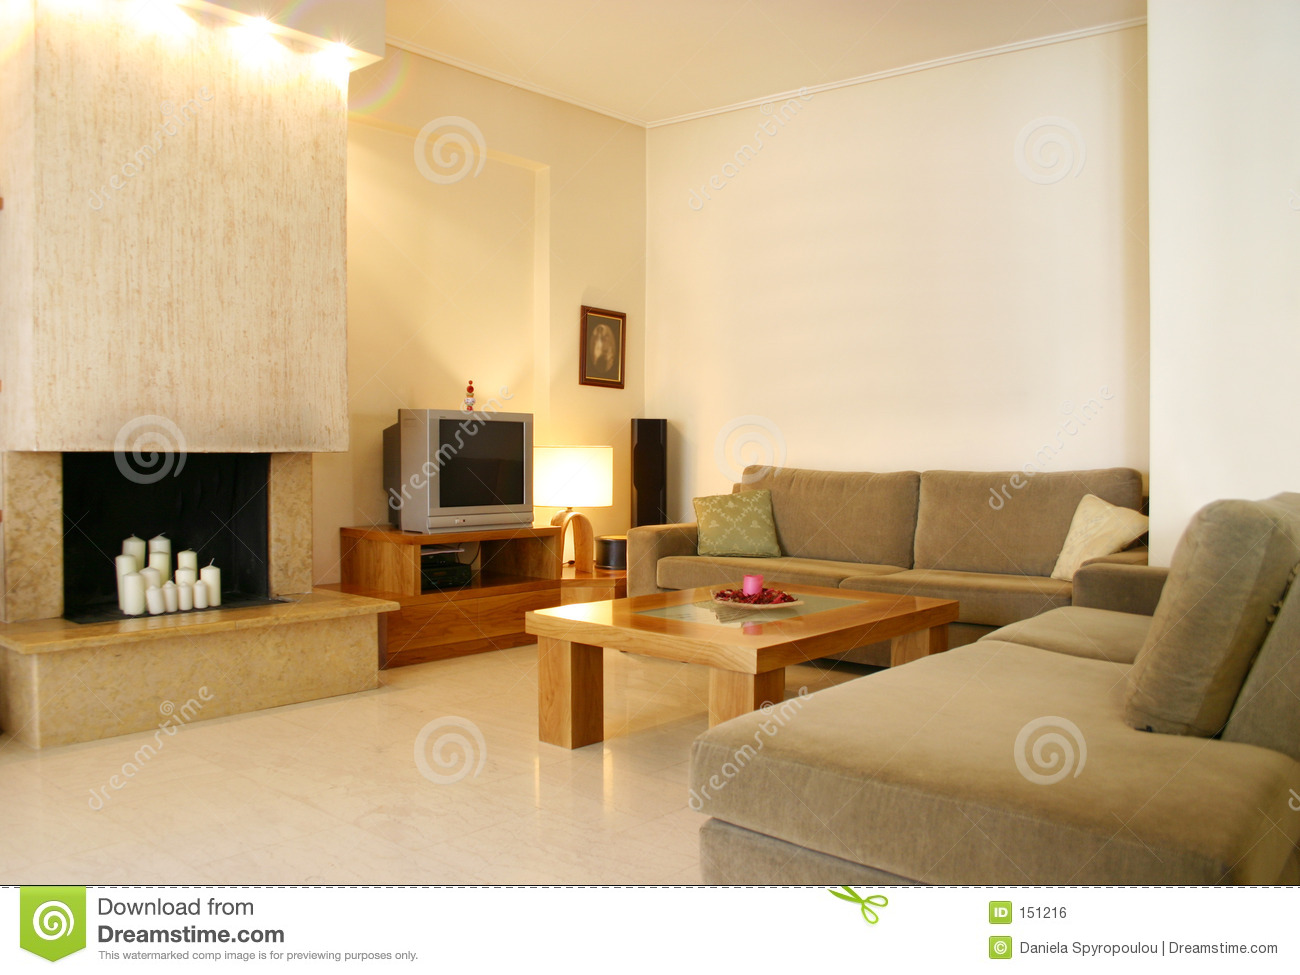 Home interior design stock photo image of modern Design interior of house